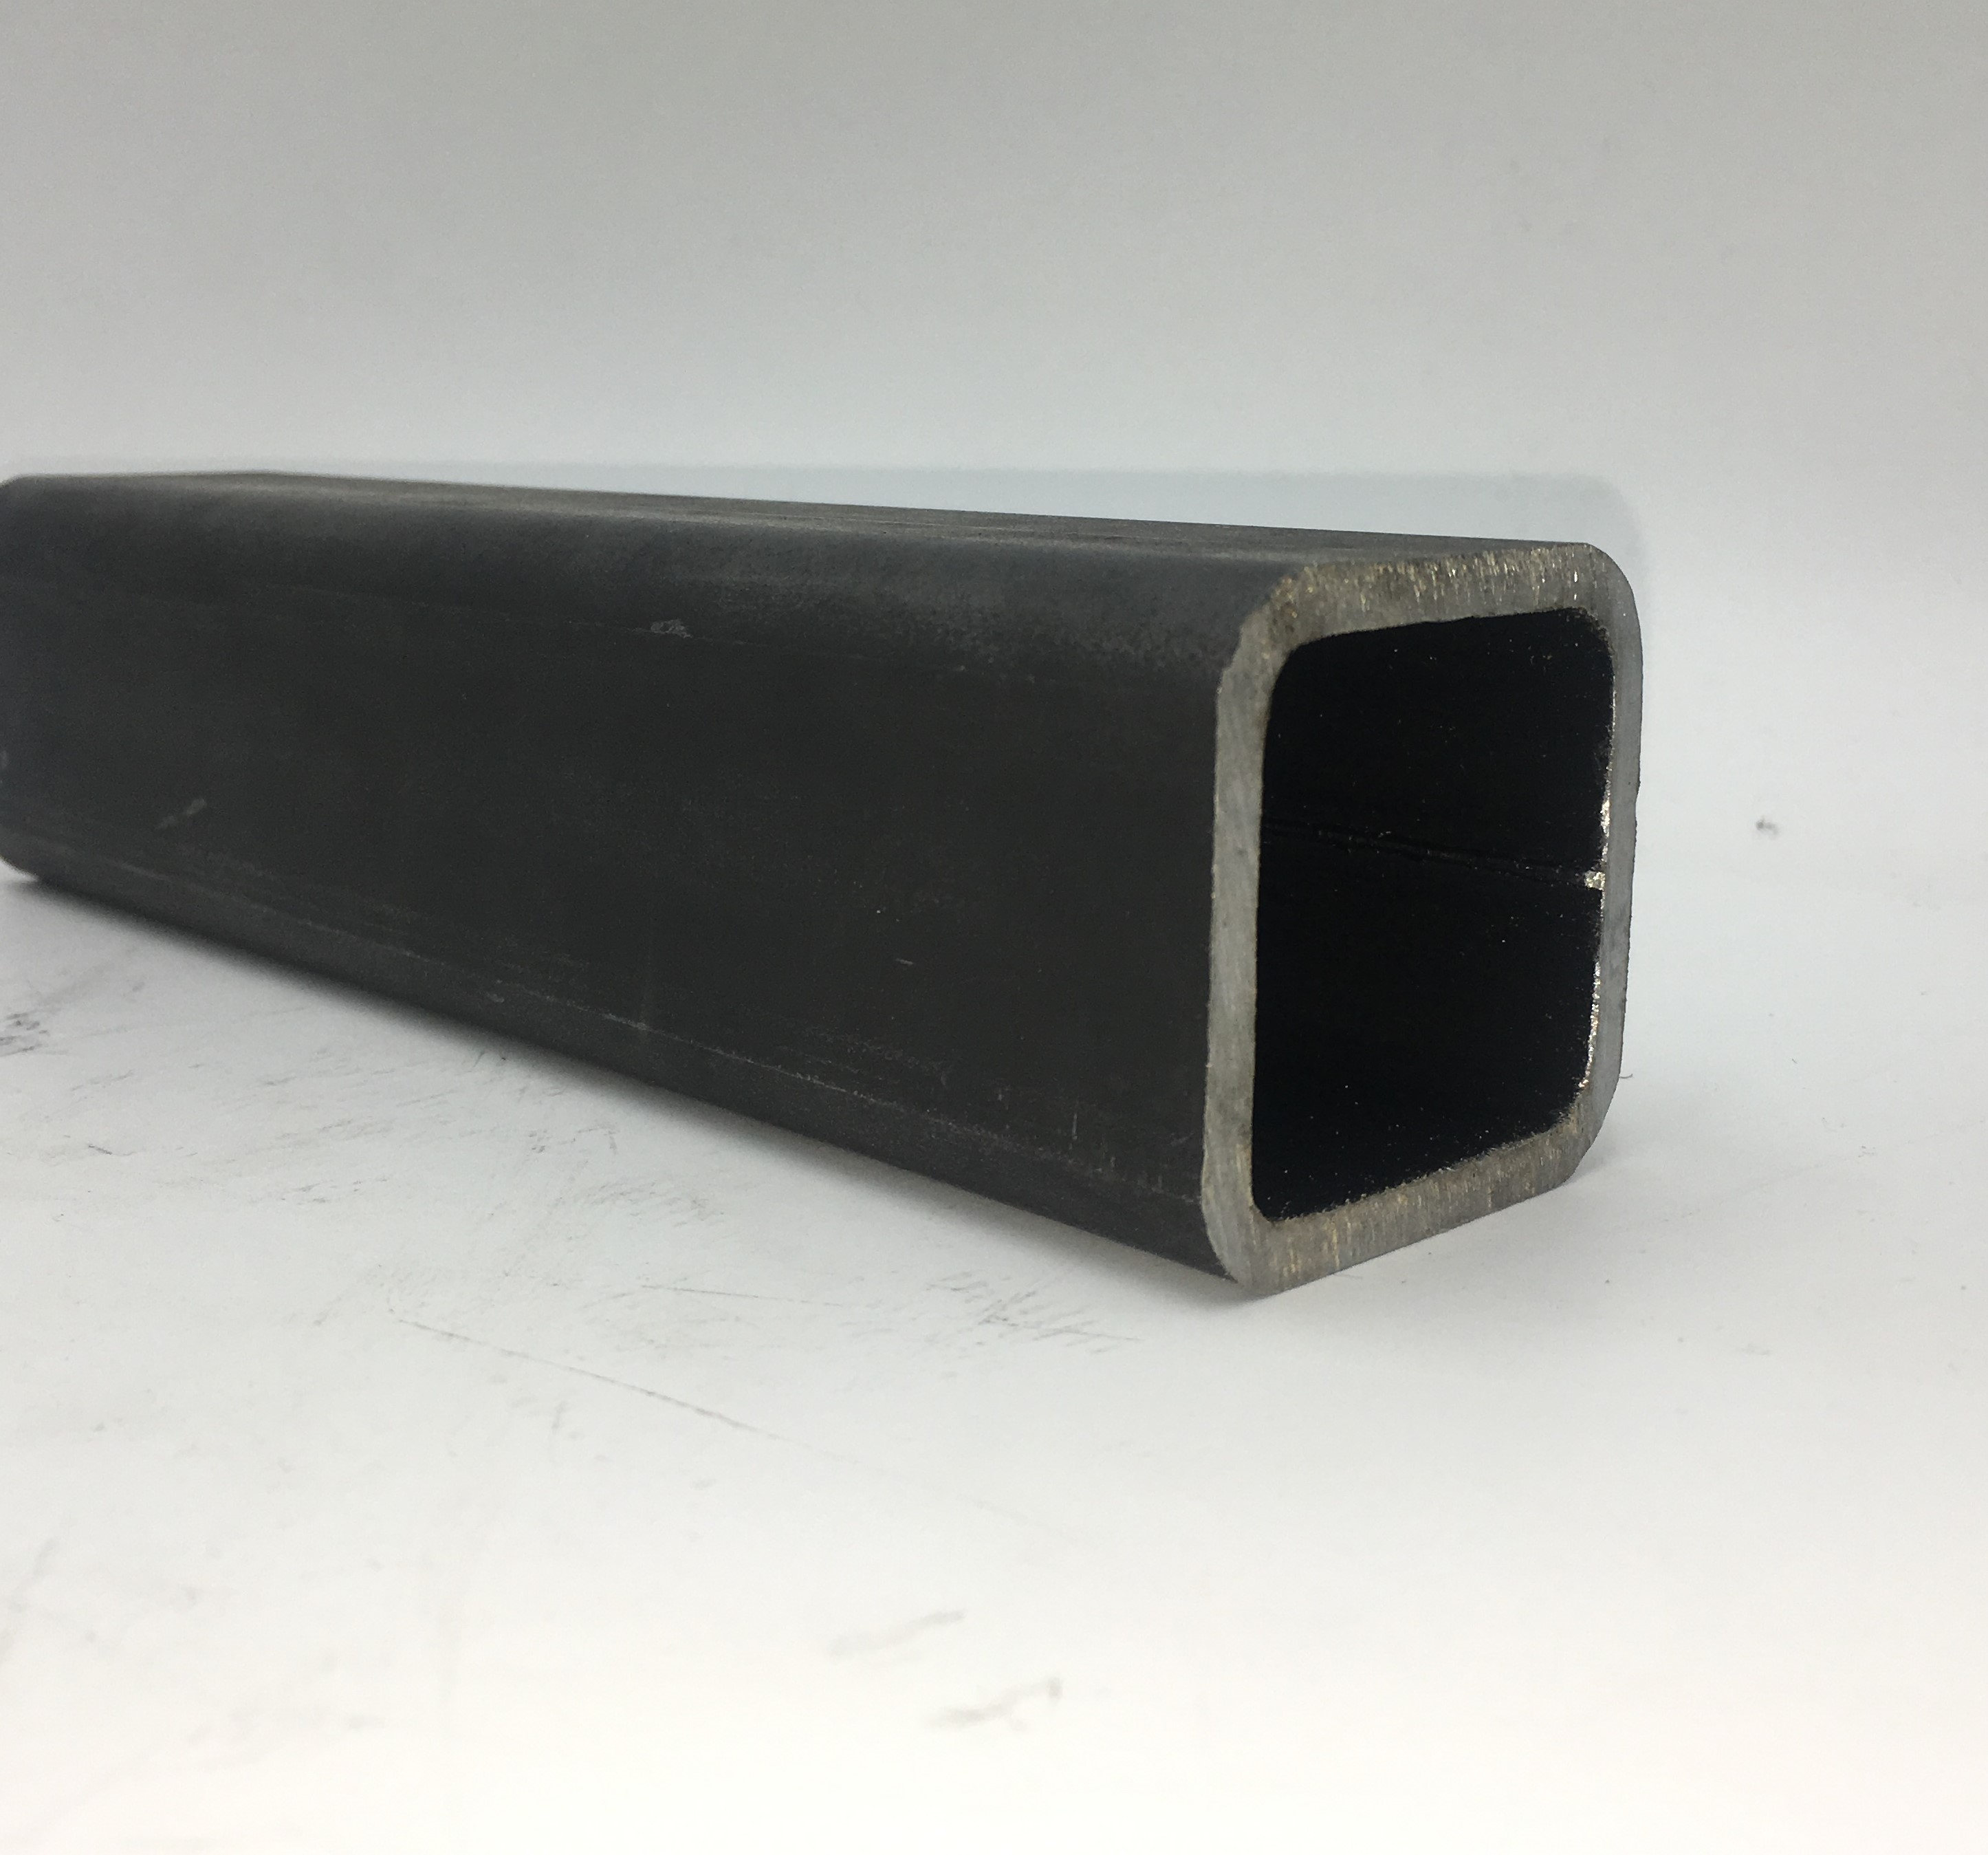 Steel rect hollow section 75mm x 50mm x 3mm x 1000 mm